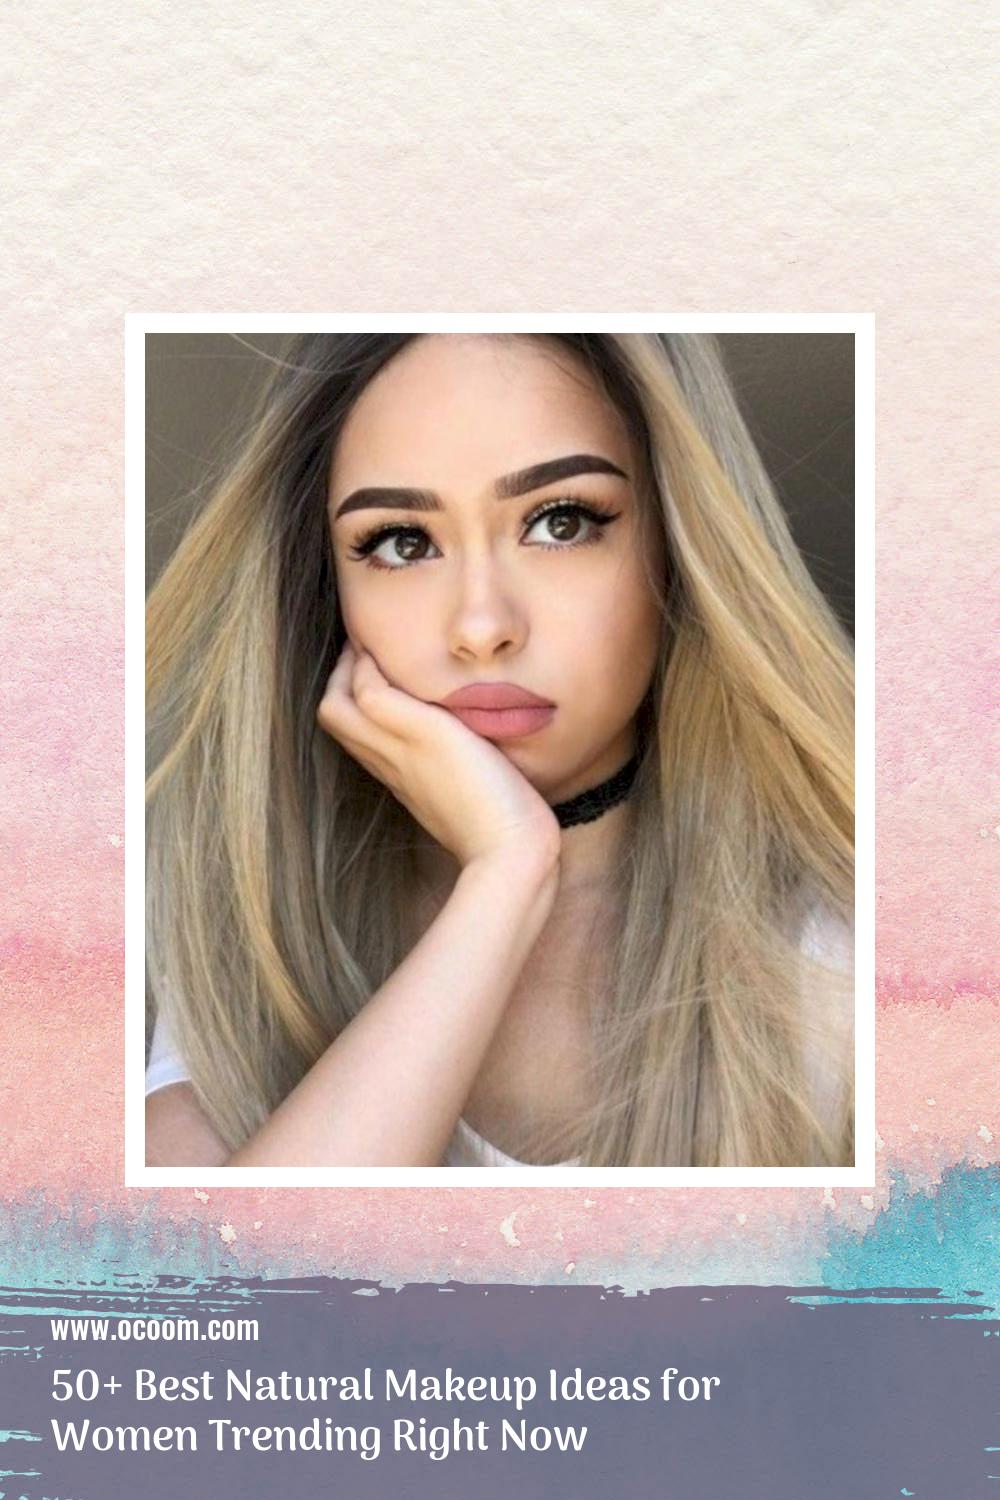 50+ Best Natural Makeup Ideas for Women Trending Right Now 1